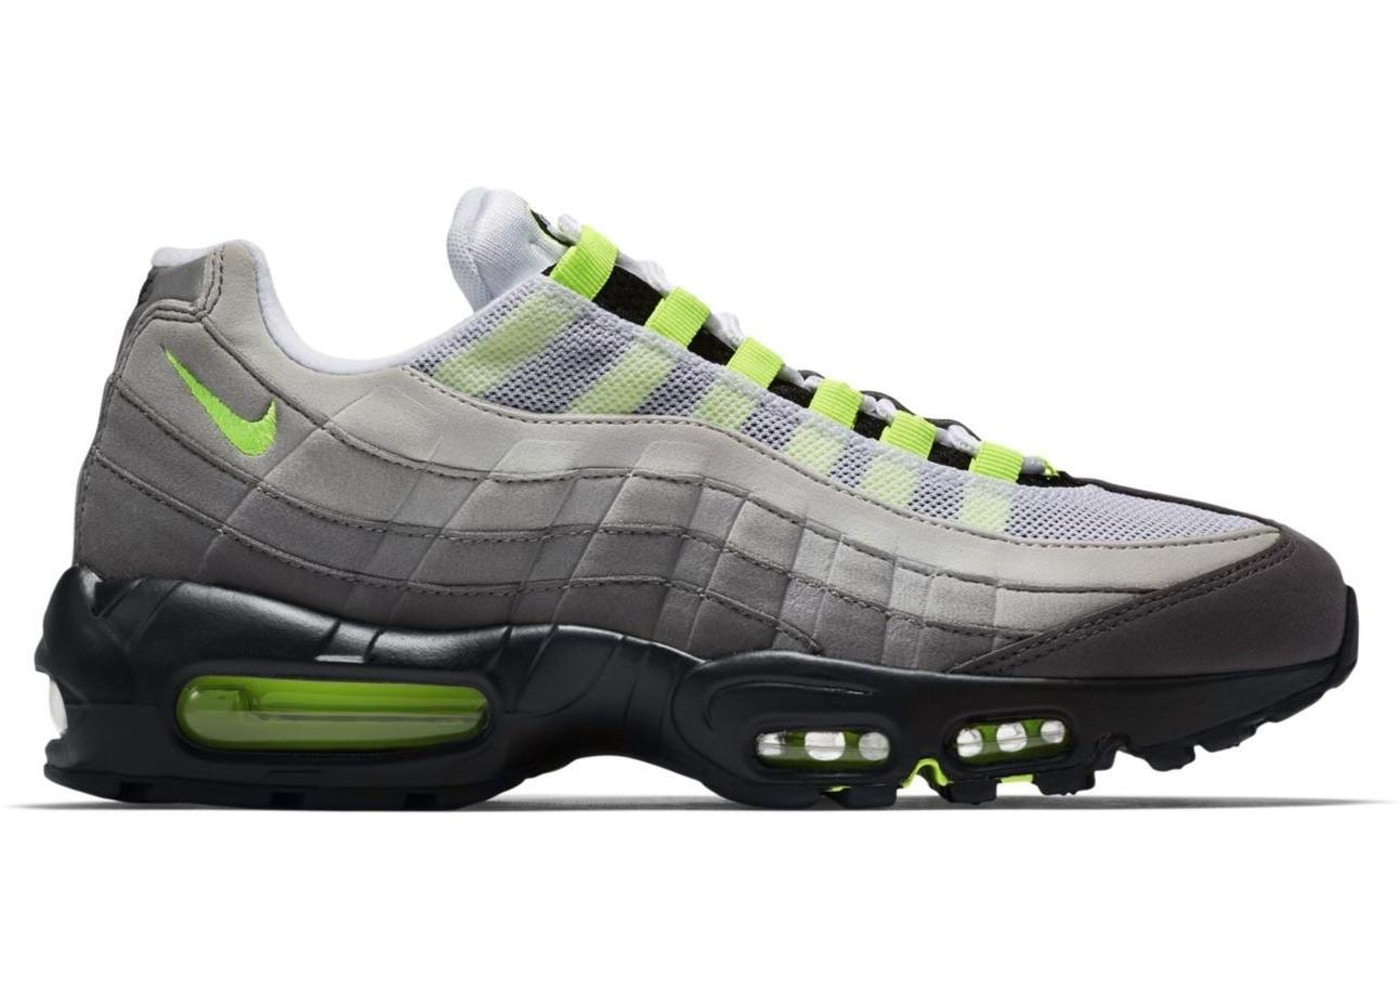 finest selection f04b9 e0438 Air Max 95 OG Neon (2015)